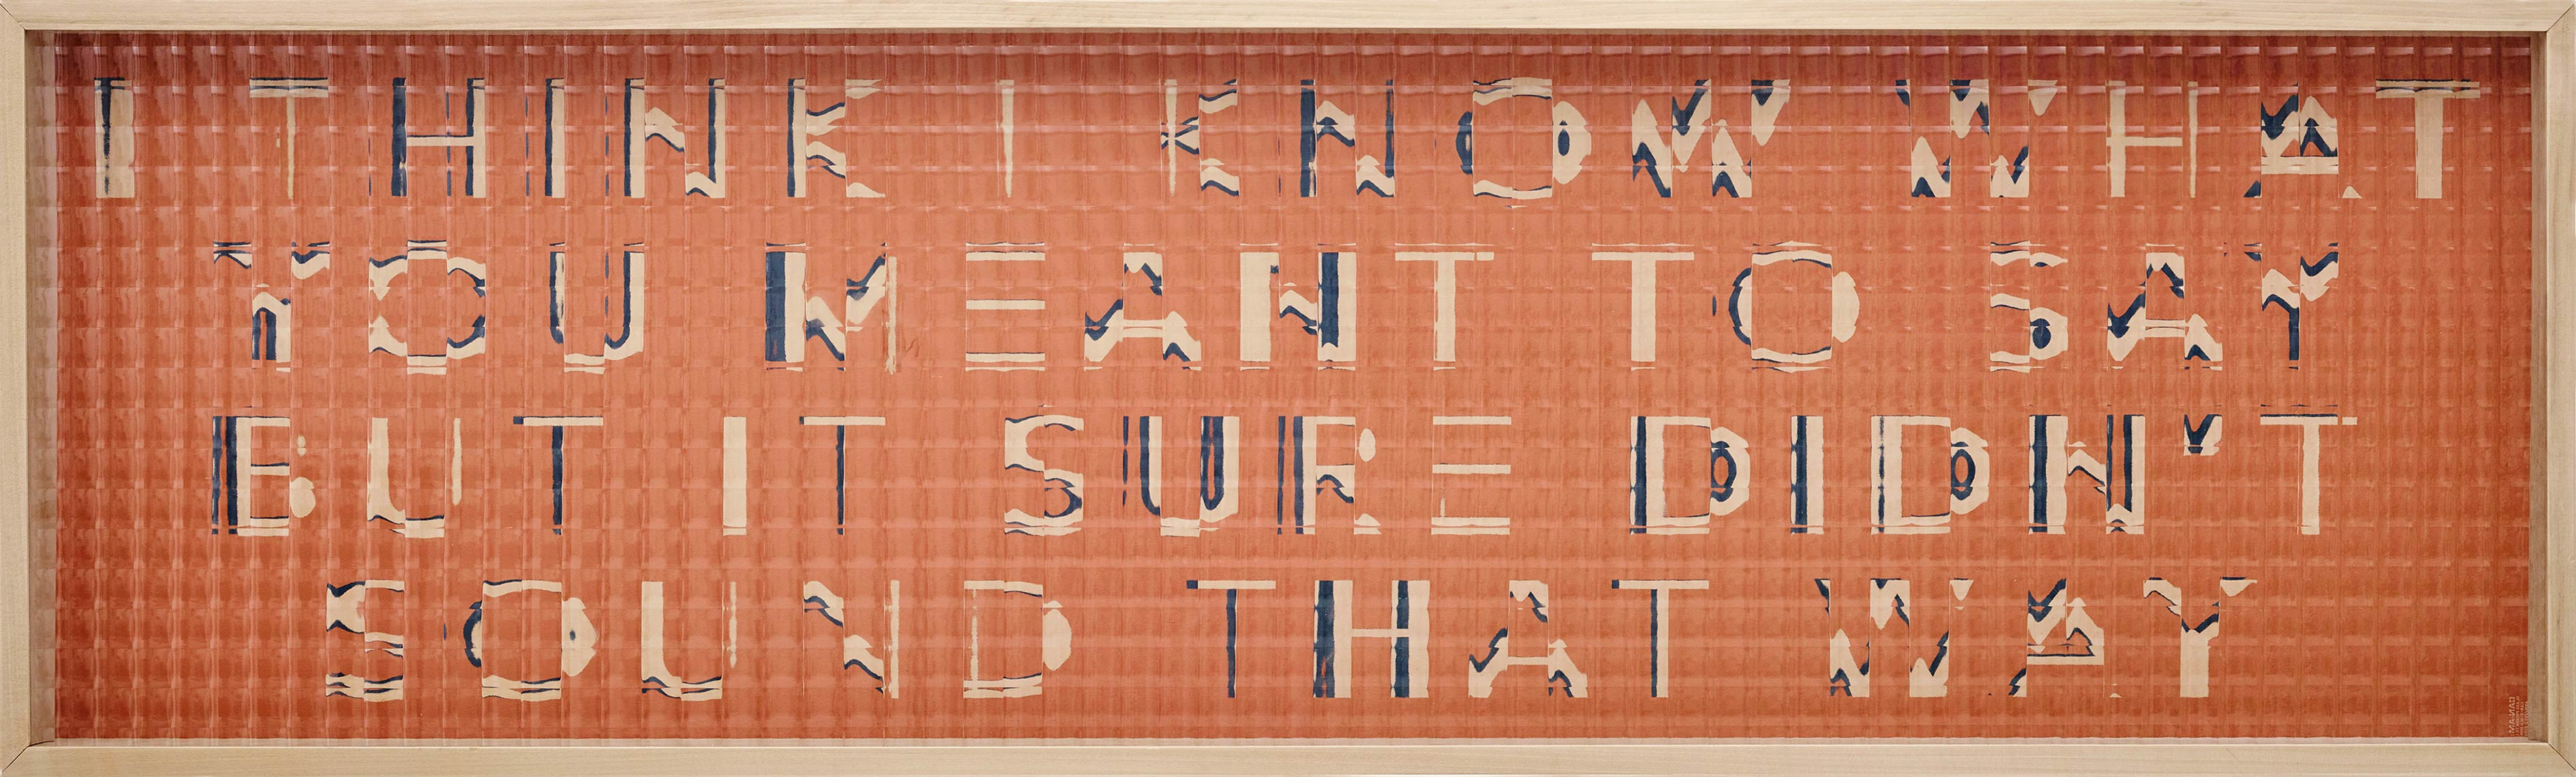 What-You-Meant-To-Say_2015_acryliconplywood-privacyglass_20.5x68x4.5inches